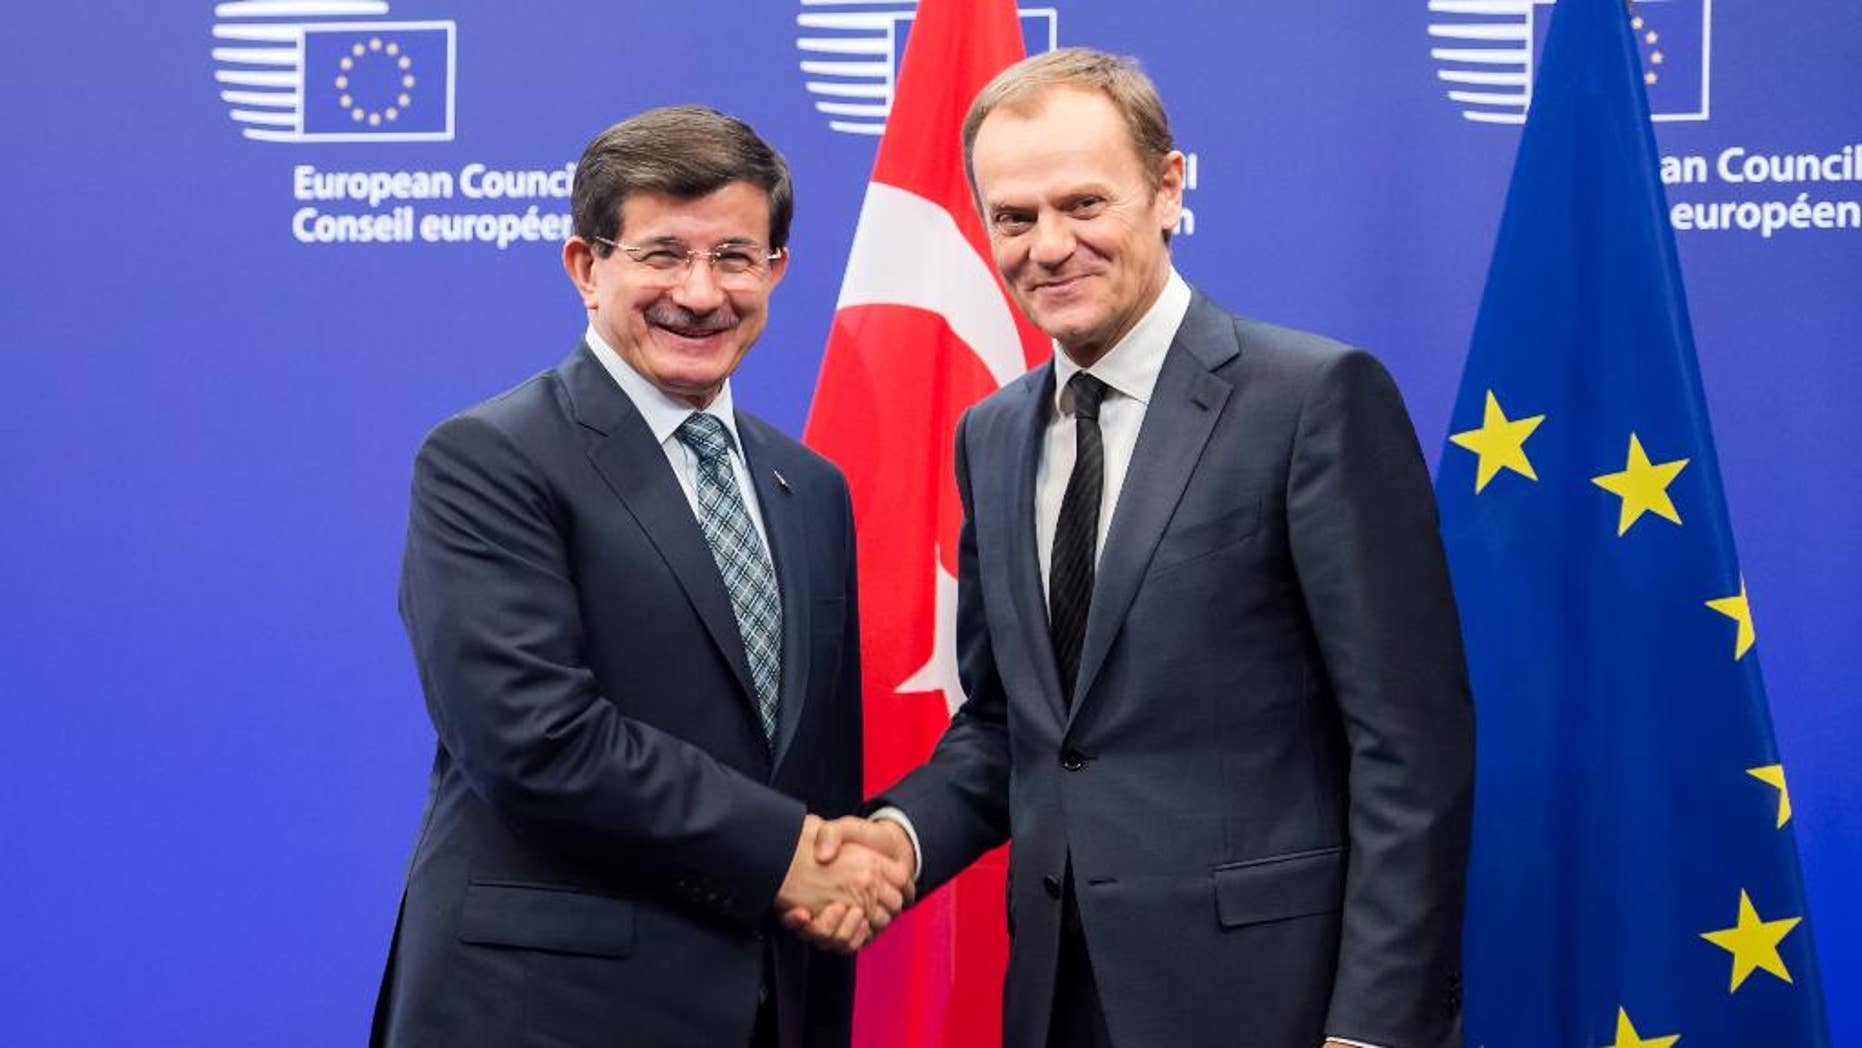 European Council President Donald Tusk, right, welcomes Turkey's Prime Minister Ahmet Davutoglu upon his arrival at the EU Council in Brussels on Thursday, Jan. 15, 2015. (AP Photo/Geert Vanden Wijngaert)